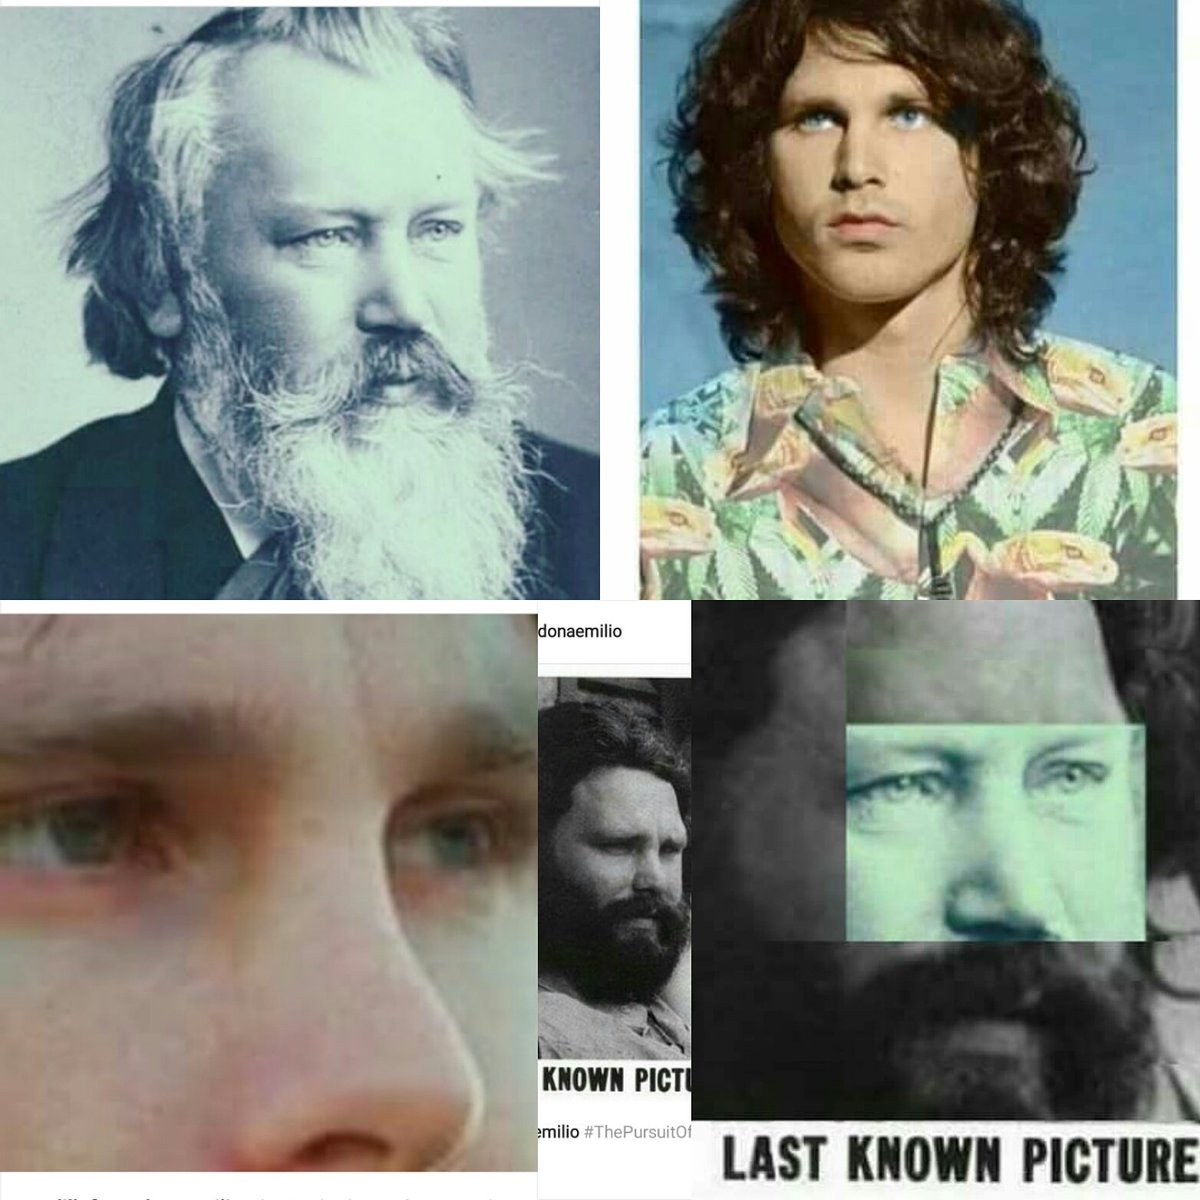 @RobbyKriegerArt  @JohnDensmore  @TheDoors  #TheDoors&#39; #JimMorrison&#39;s eyes were #blues.Very few pictures were this is clear/ #JohannesBrahms <br>http://pic.twitter.com/KsGlh0Xcvk